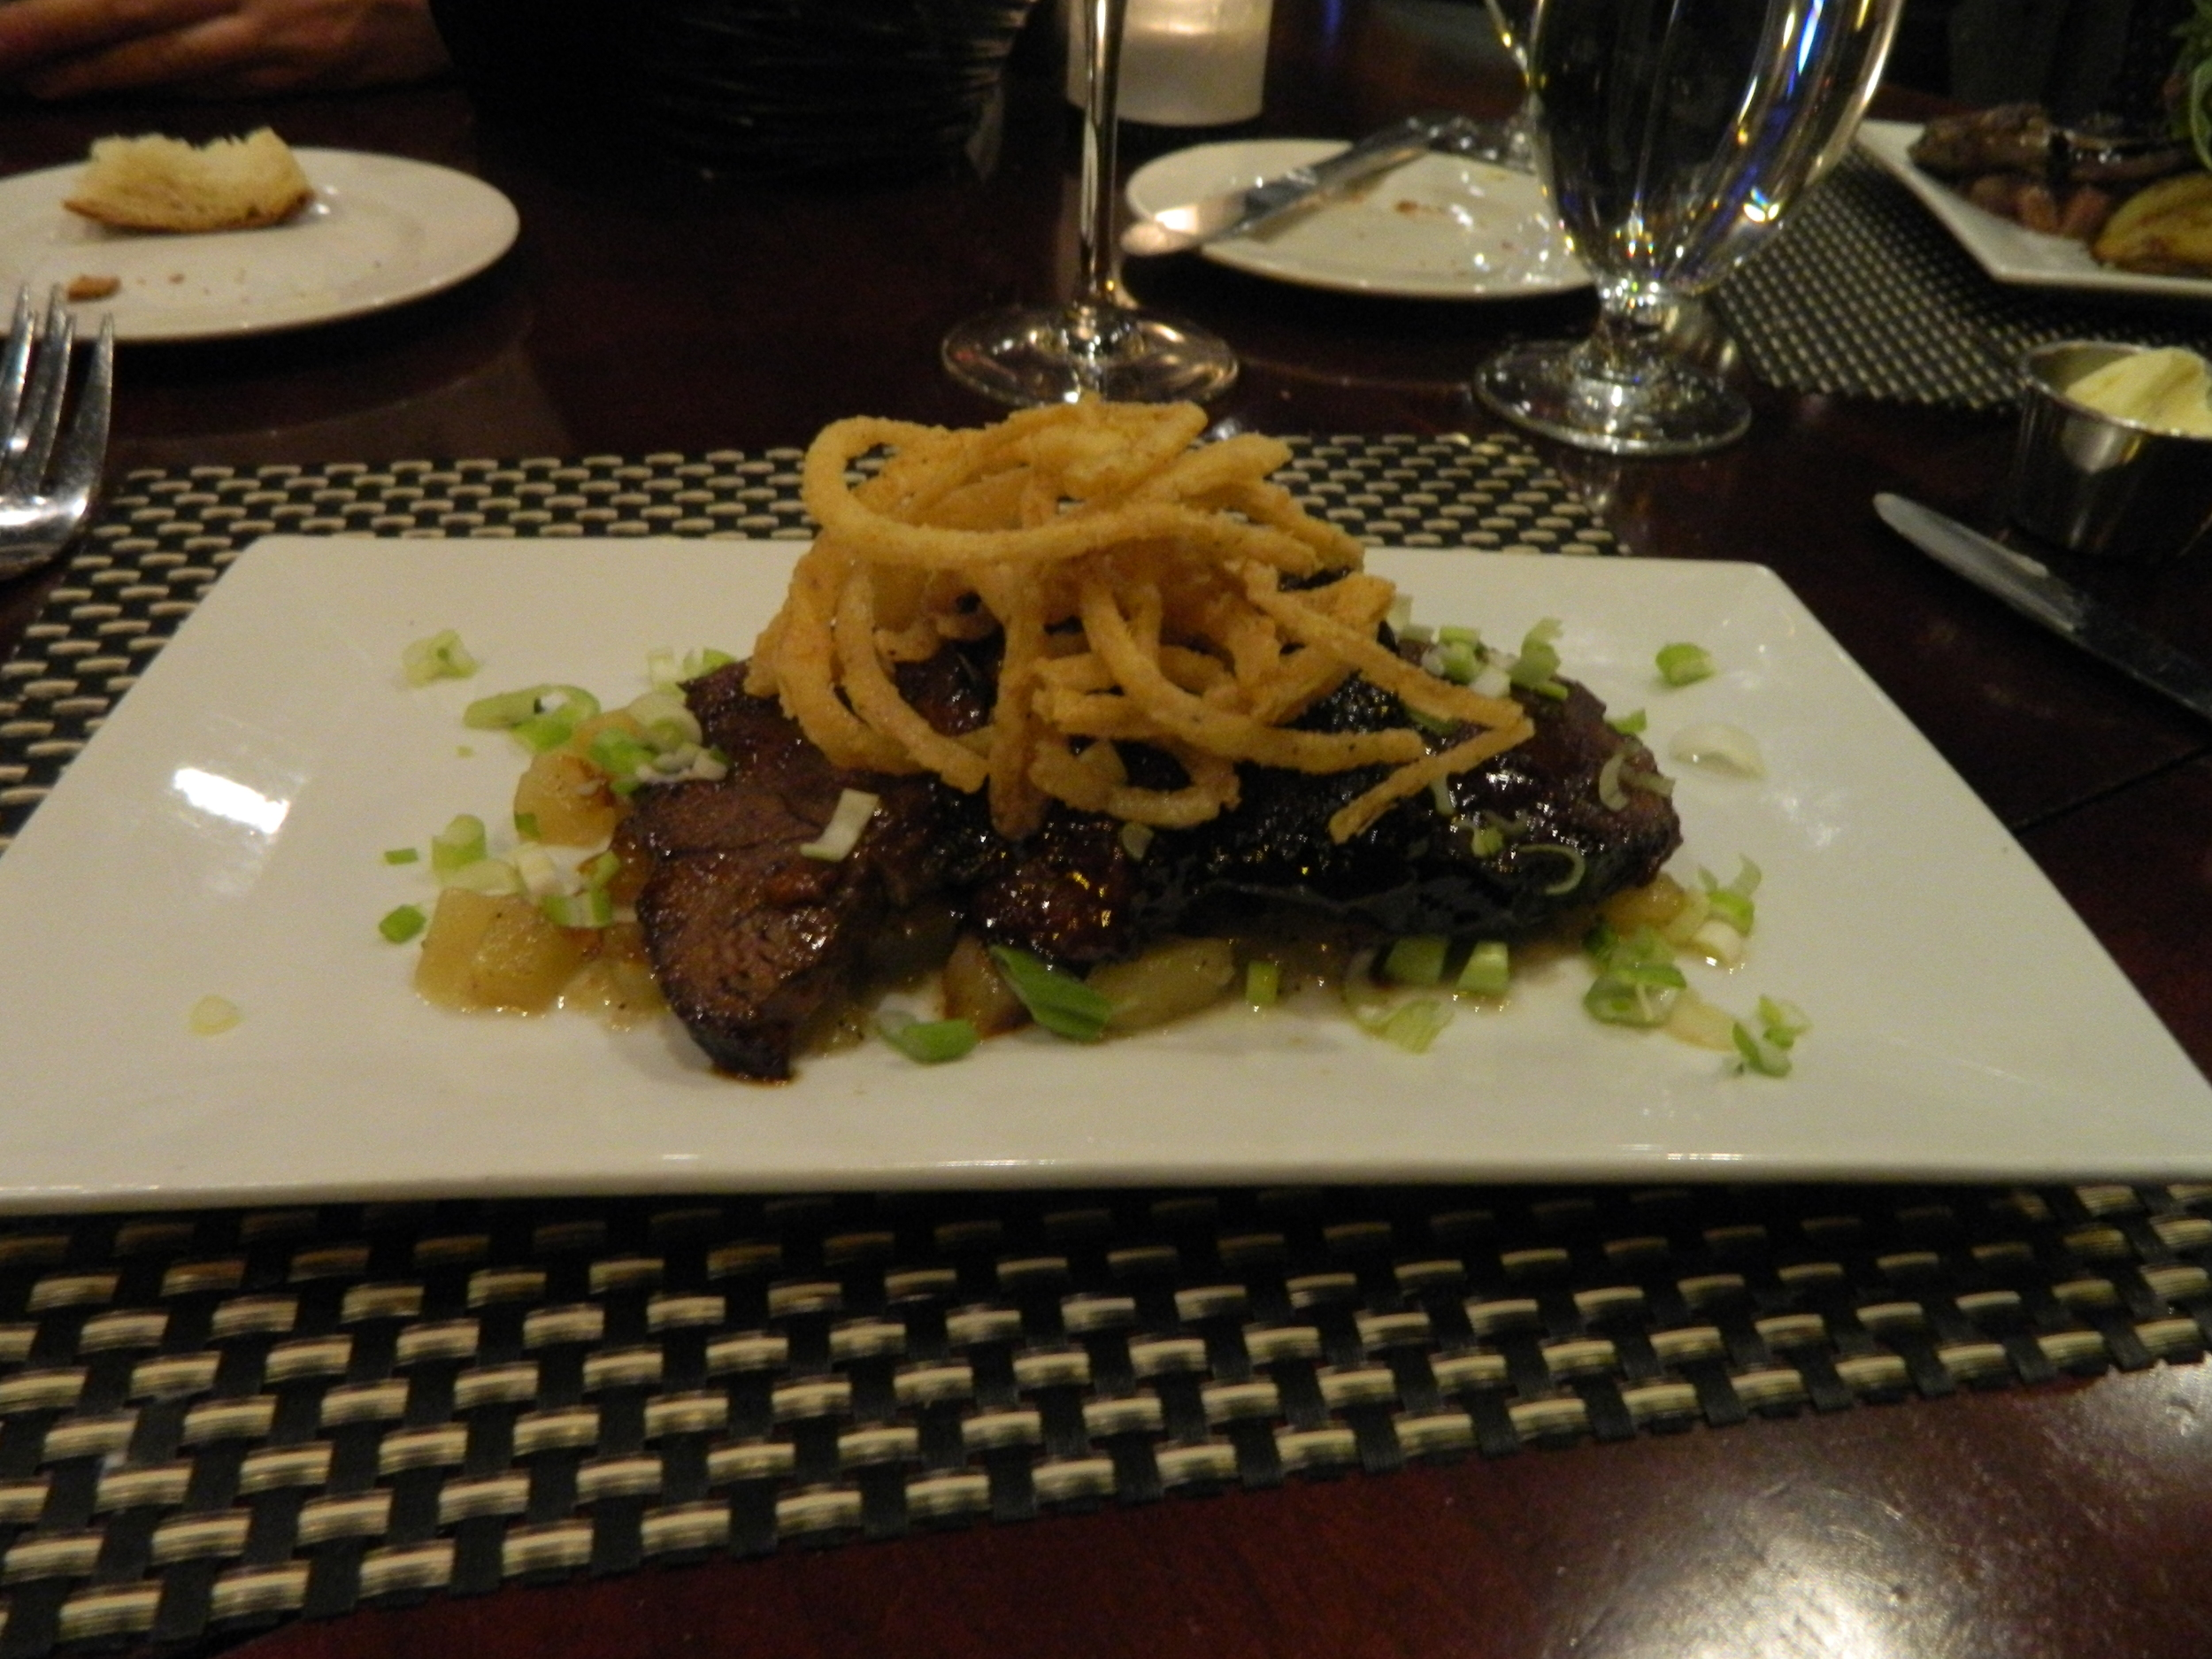 The Asian lacquered short ribs at Black & Blue are perfectly marinated and fall off the bone.